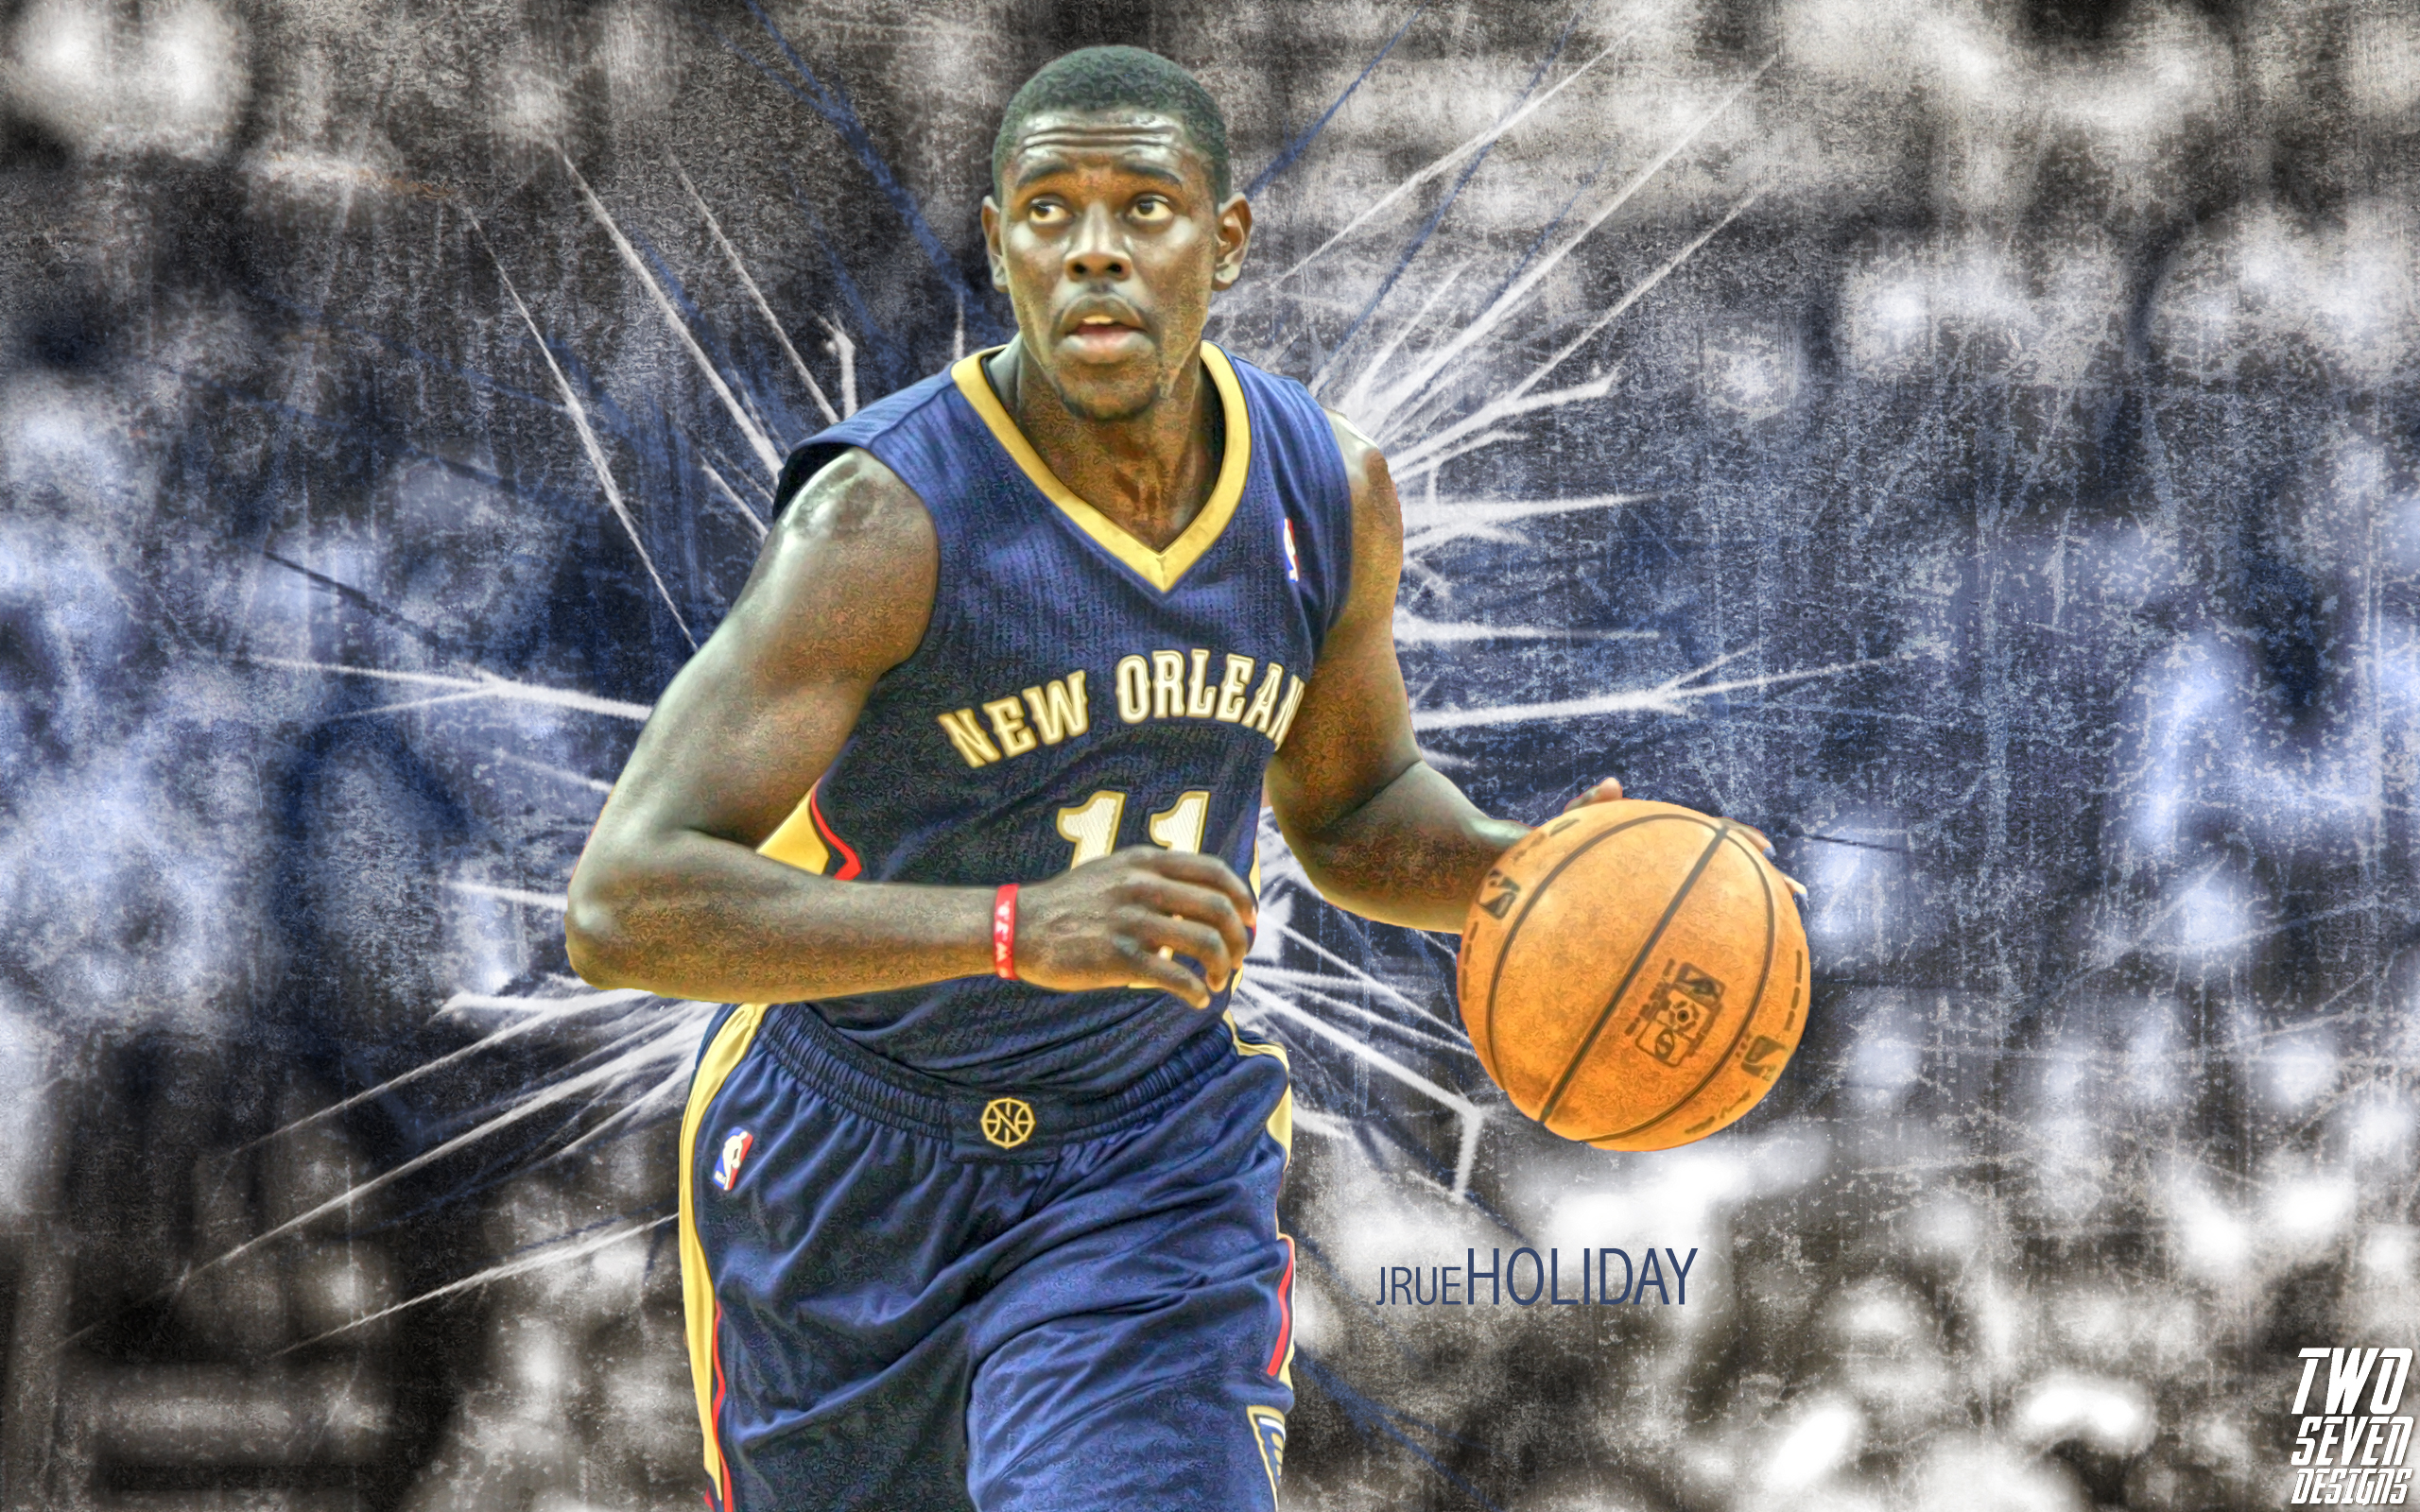 Change Wallpaper On Iphone 2014 Nba Wallpapers Two Seven Designs